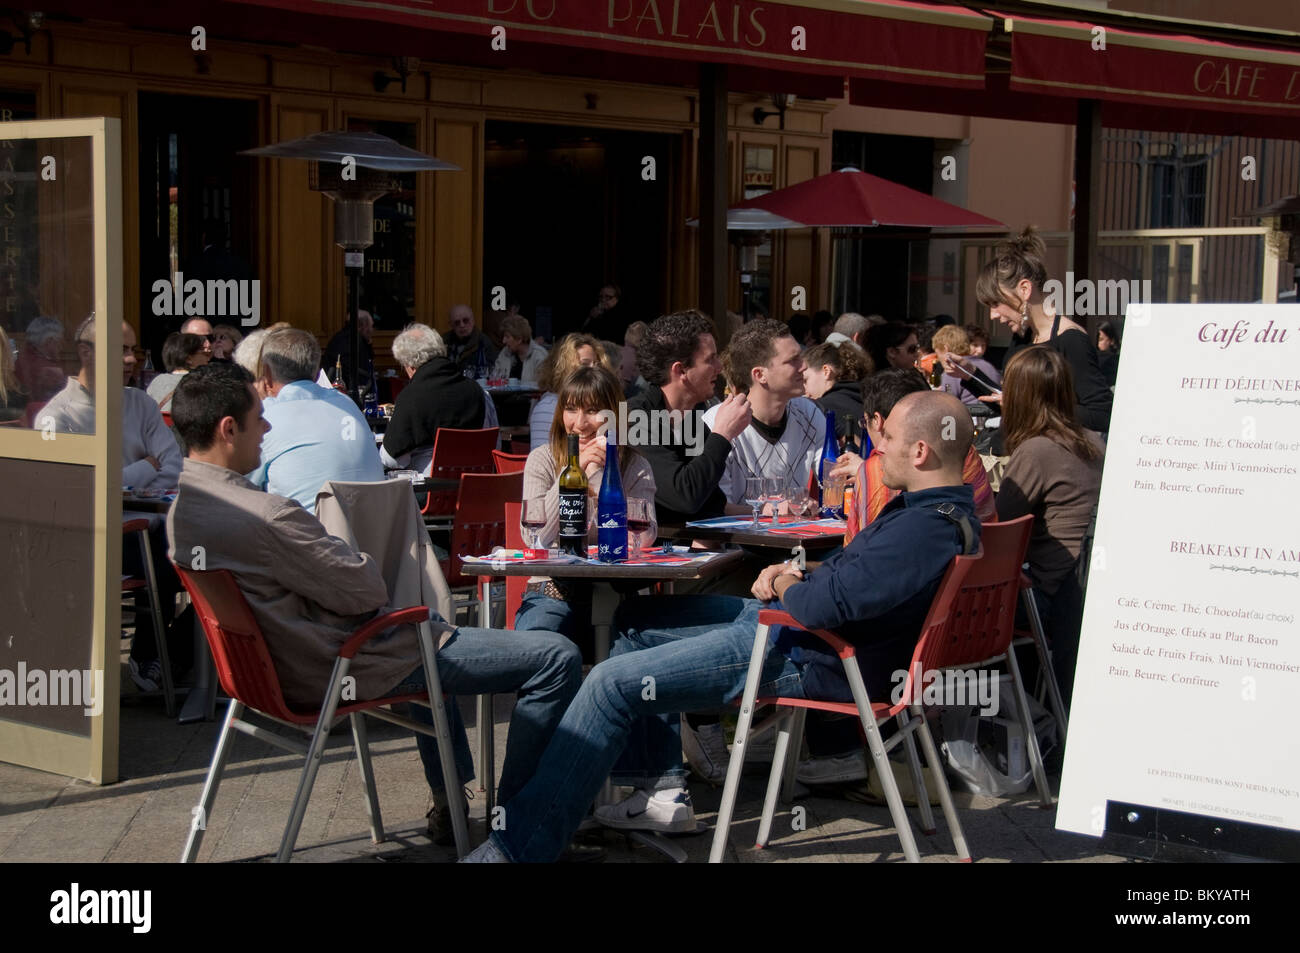 Crowded restaurant table - Nice France French Cafe French Bistro Restaurant Sidewalk Crowded Terrace Cafe Du Palais